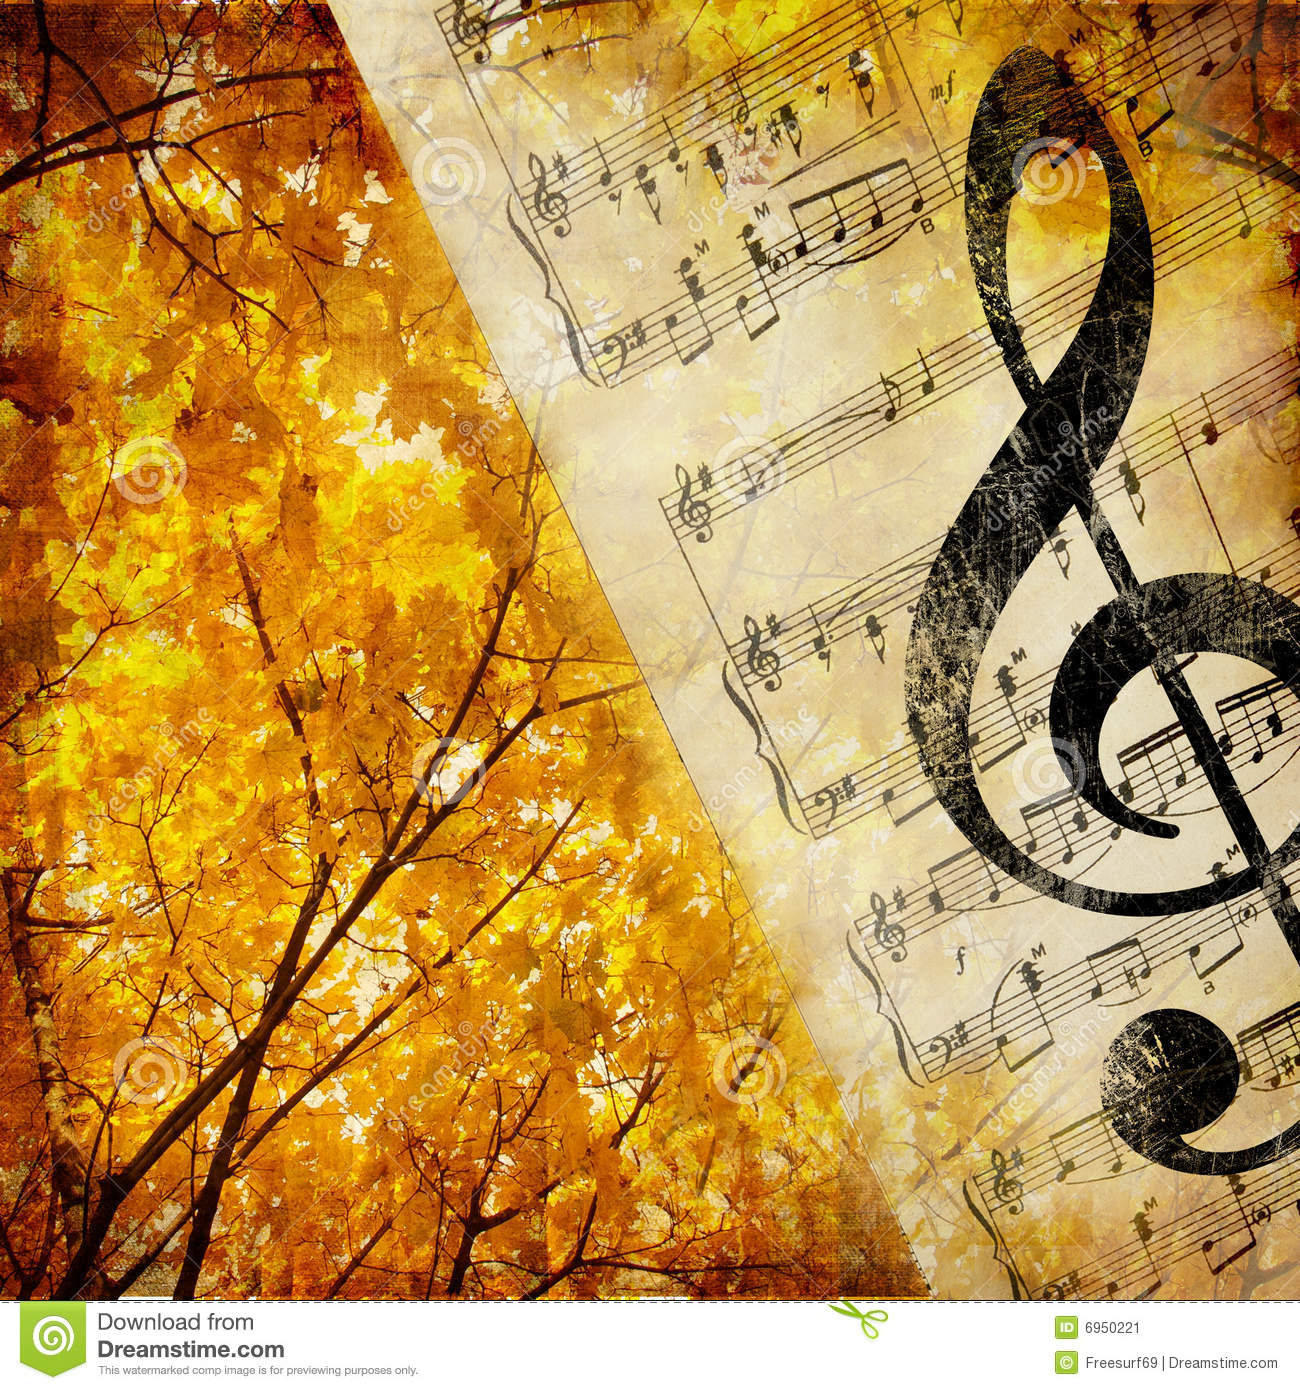 Fall Pumpkin Wallpaper Autumn Music Stock Image Image 6950221